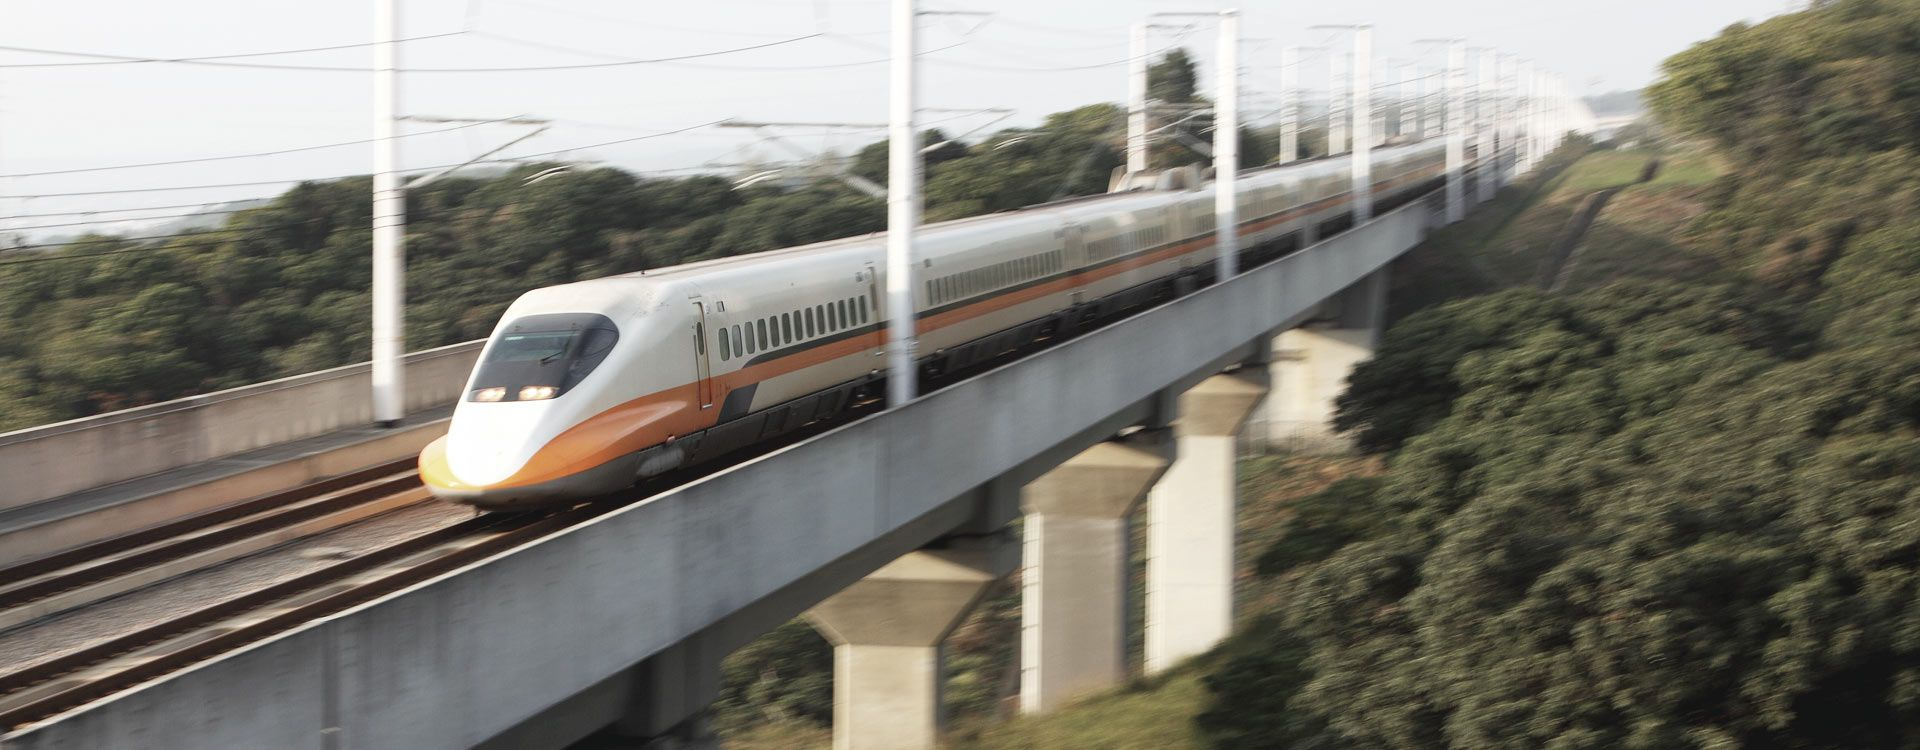 bnr-Rail_And_Transit_High_Speed_Rail-Banner